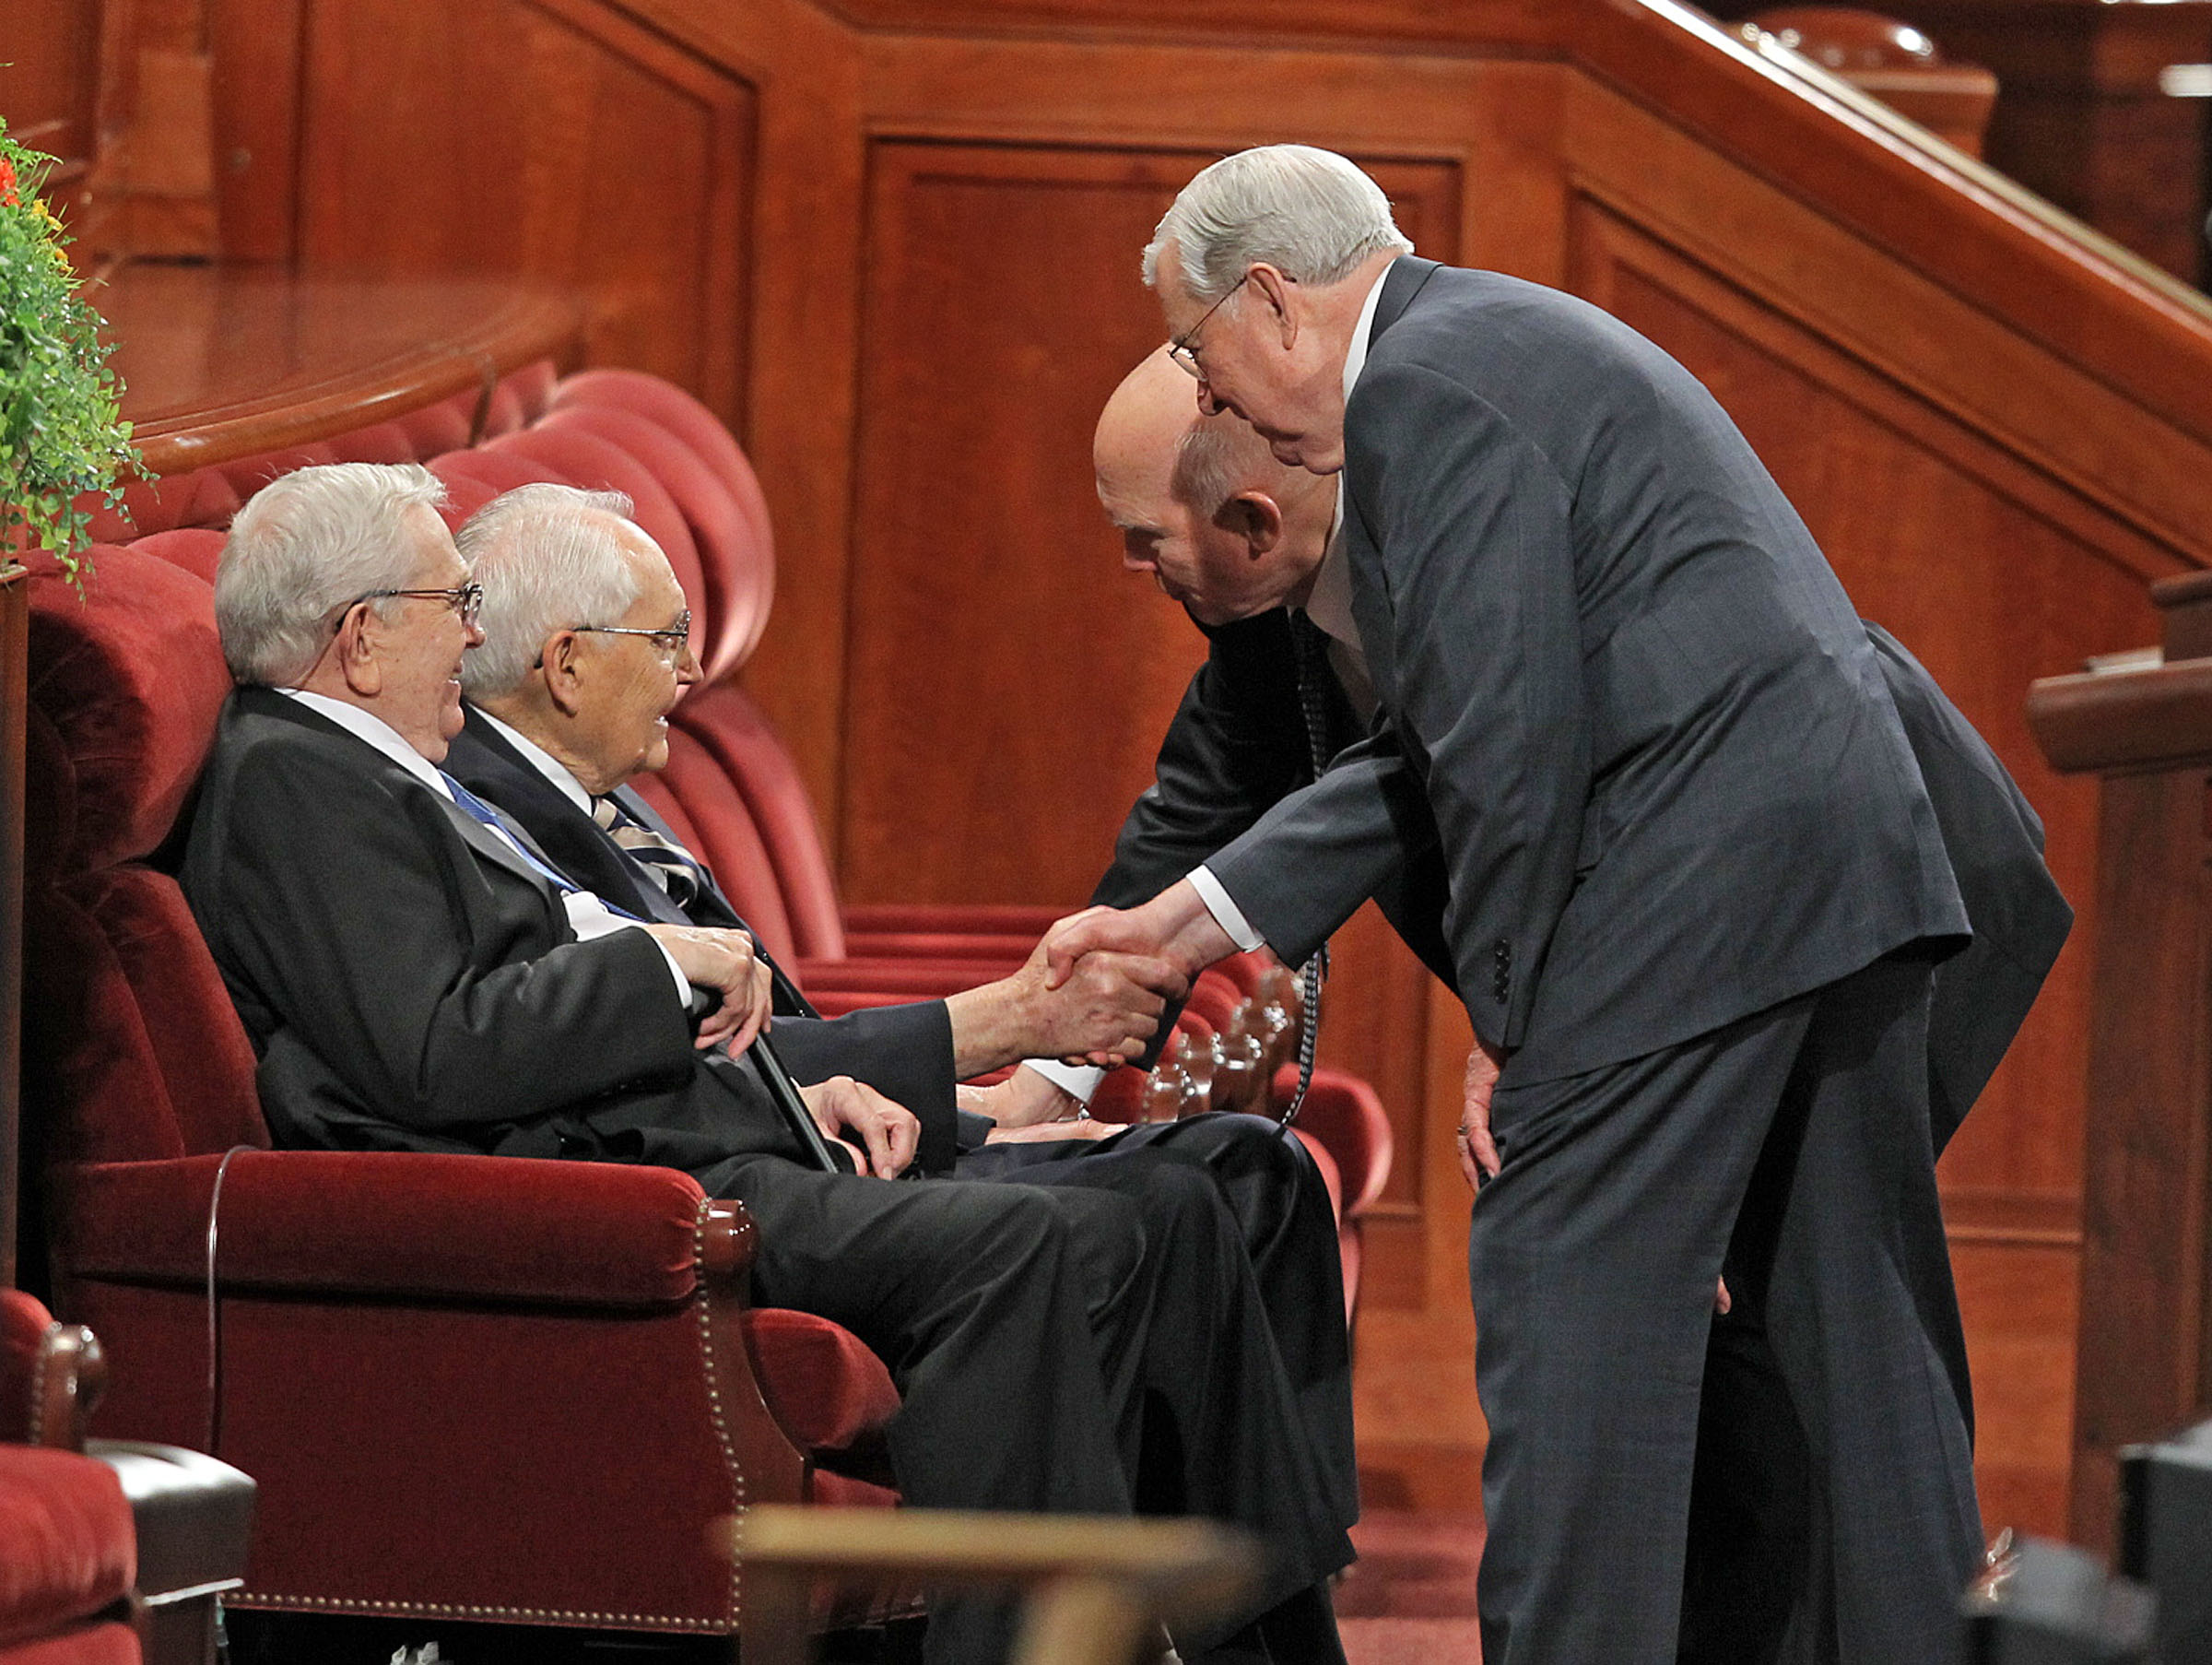 President Boyd K. Packer and Elder L. Tom Perry are greeted by Elder Dallin H. Oaks and Elder M. Russell Ballard, from left, as they visit prior to the Sunday morning session of The Church of Jesus Christ of Latter-day Saints 181st Annual General Conference Sunday, April 3, 2011, in Salt Lake City, Utah. (Tom Smart, Deseret News)